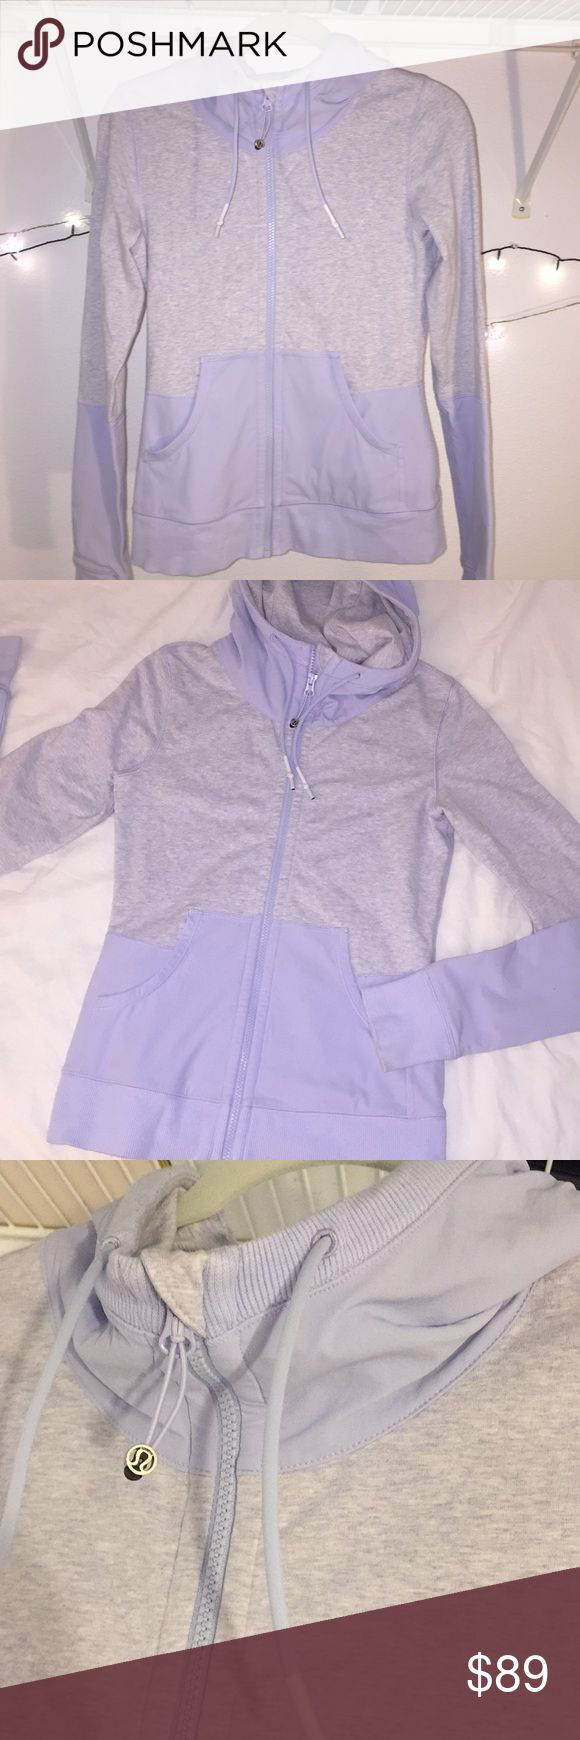 Lululemon hoodie Perfect condition lululemon hoodie. Material is thick and amazing quality. This is meant for a tighter and slimming fit. It's amazing! Selling bc I grew and my shoulders are too broad. Amazing light purple/periwinkle and heathered gray. True to size. Fits a 4/6! lululemon athletica Tops Sweatshirts & Hoodies